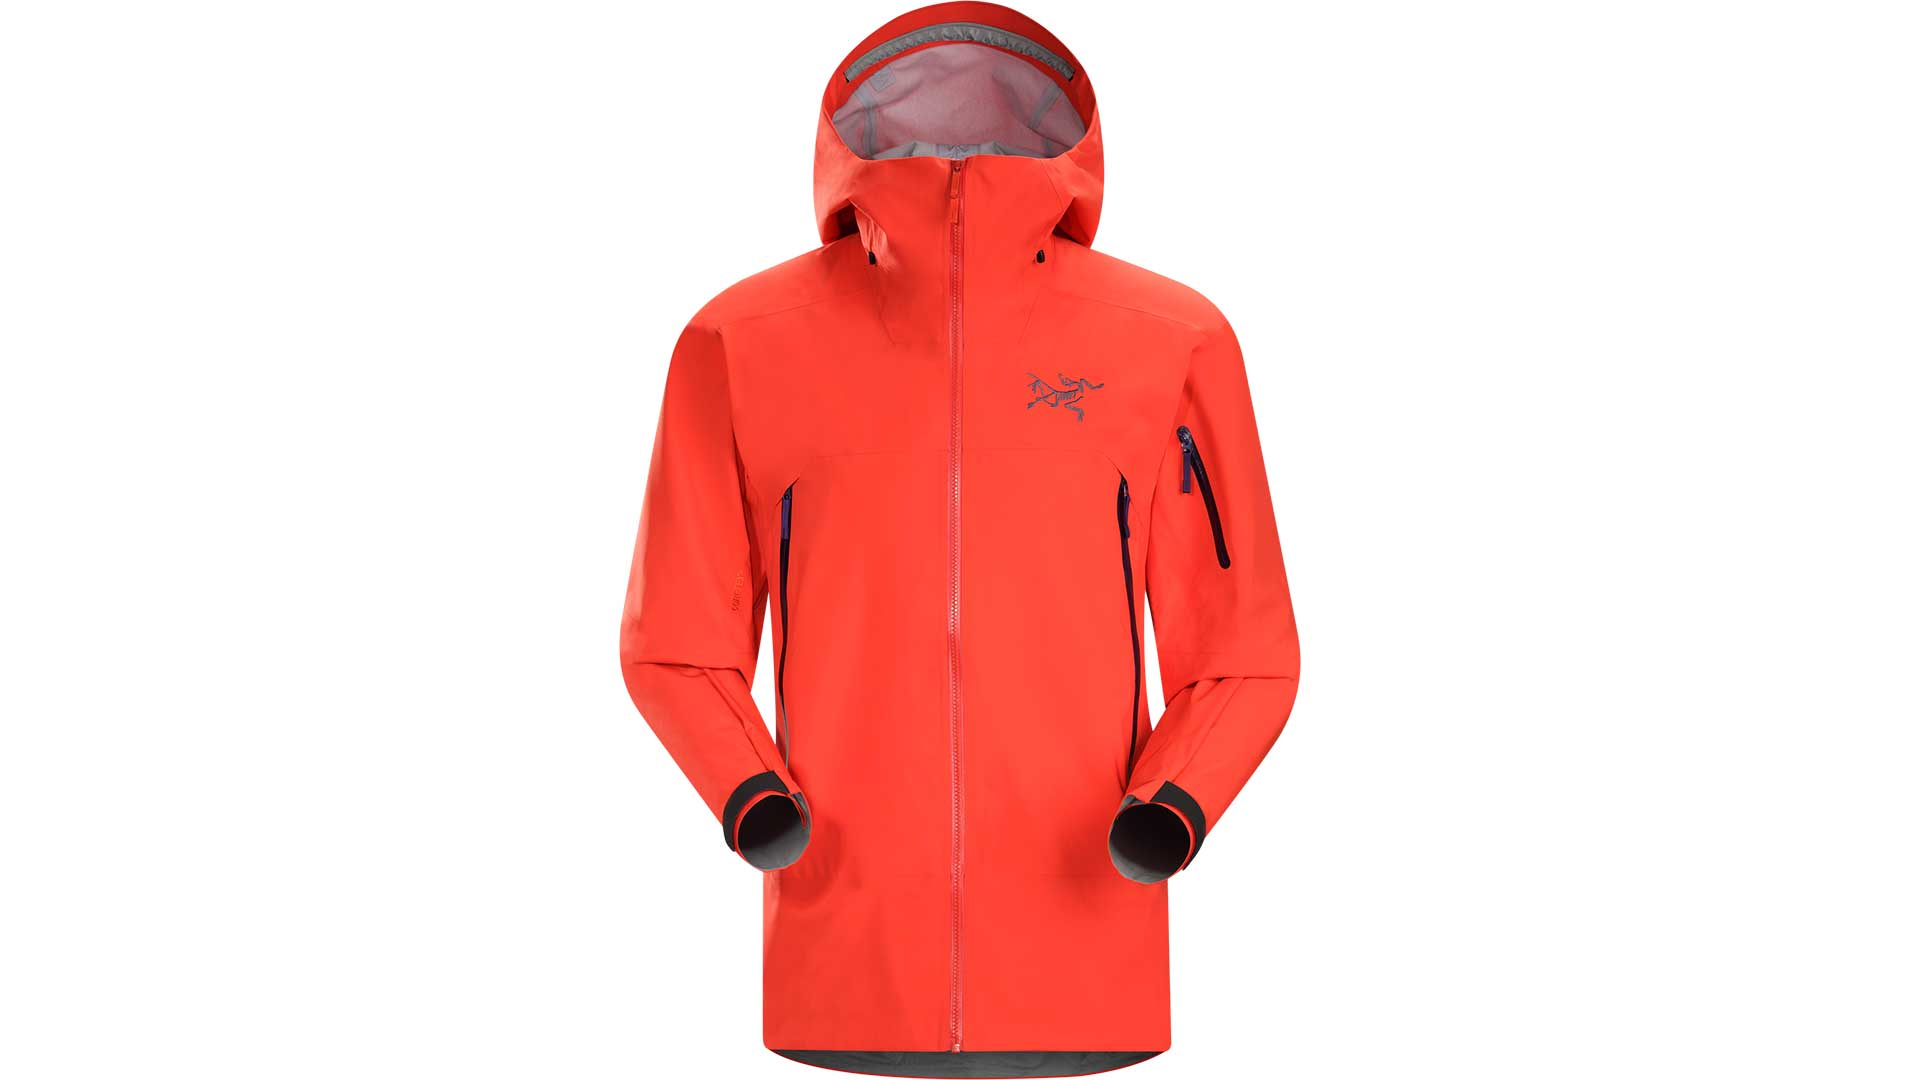 4b5c12a1f8 What do Arcteryx product name codes mean? - blog.jans.com